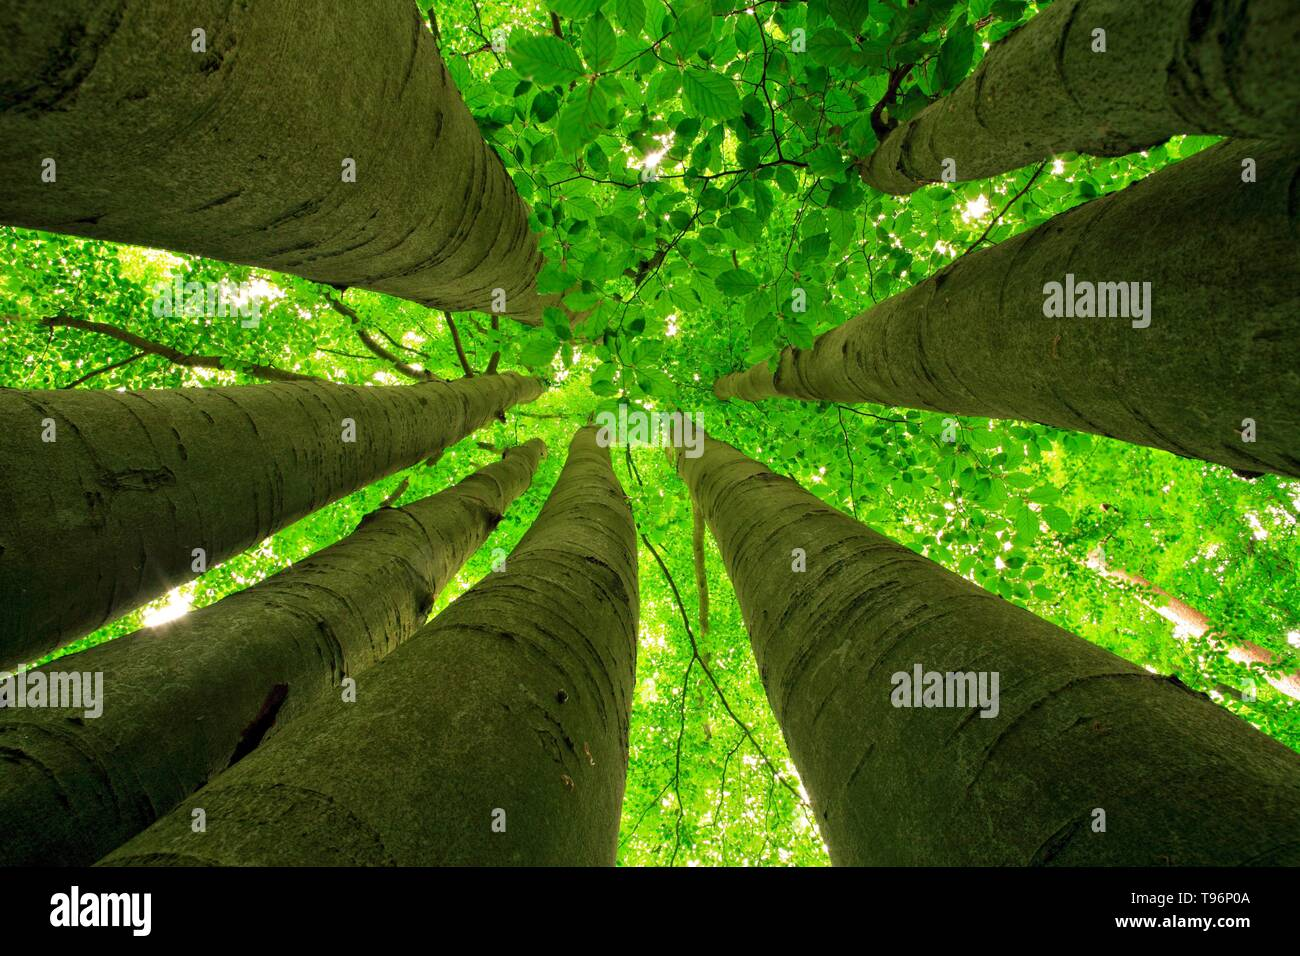 Narrow standing big Beeches (fagus), view from below into the treetops in spring, fresh green, Colbitz-Letzlinger Heide, Saxony-Anhalt, Germany - Stock Image